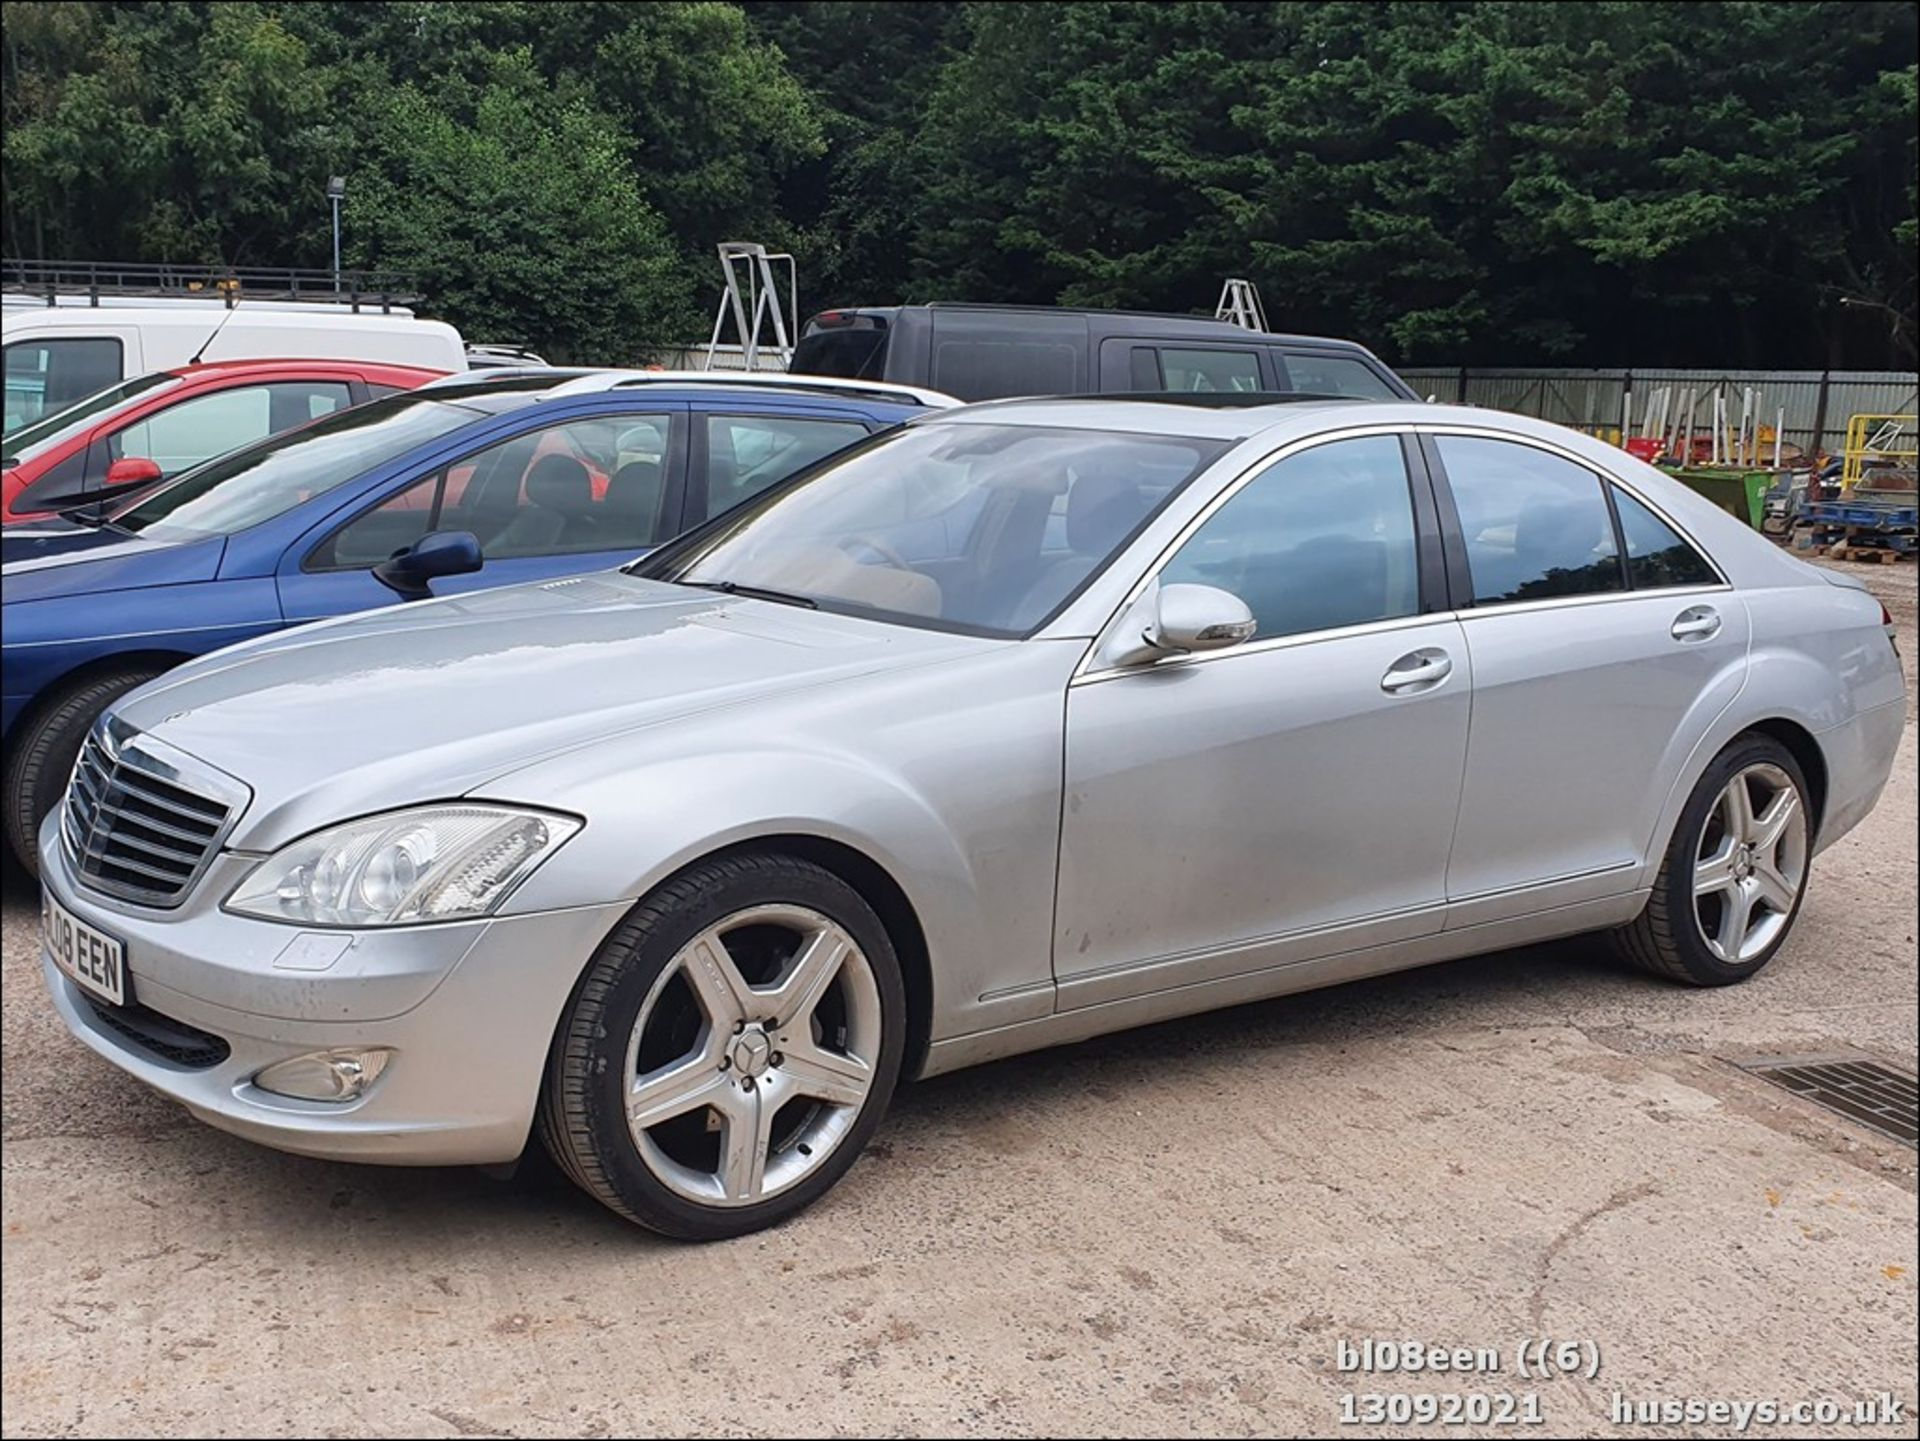 08/08 MERCEDES S320 CDI AUTO - 2987cc 4dr Saloon (Silver, 205k) - Image 6 of 16